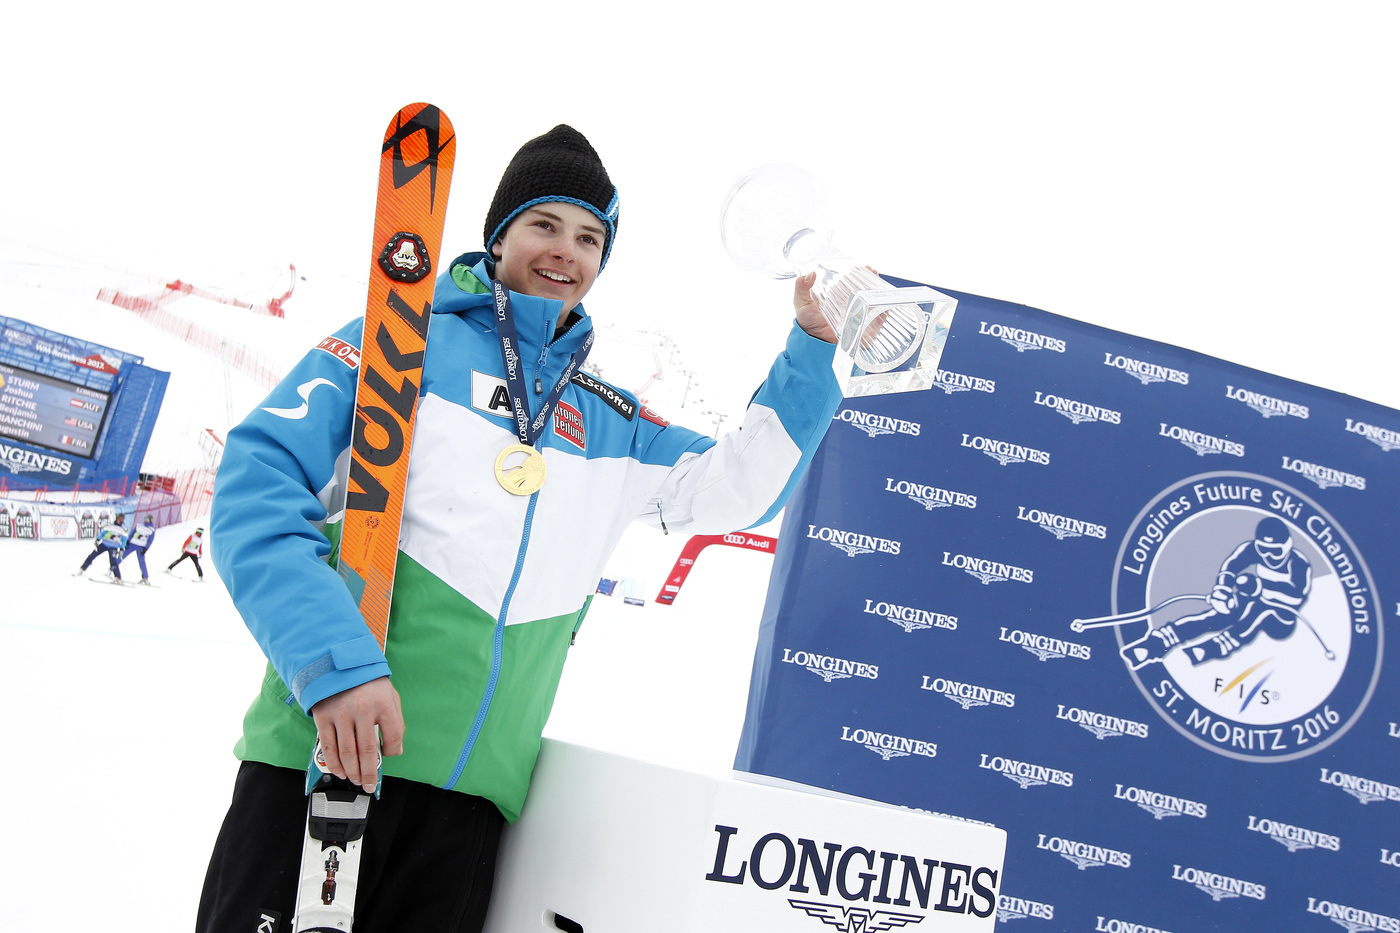 Longines Alpine Skiing Event: A new venue for the third edition of the Longines Future Ski Champions 2